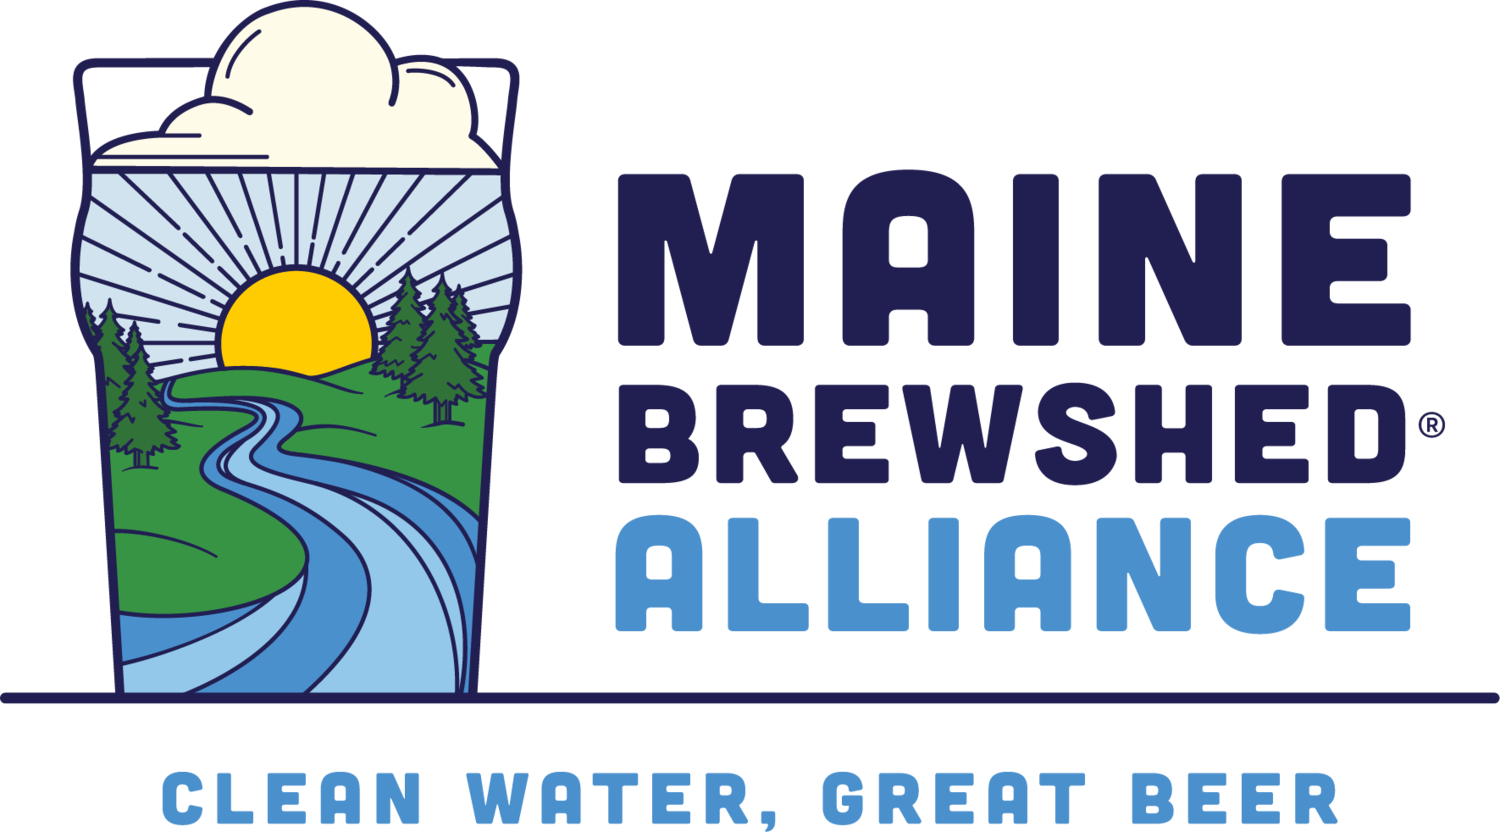 Maine brewshed alliance - Geary Brewing Co. was one of the 12 founding breweries of the Maine Brewshed Alliance. Through this relationship we are fostering and educating a community of beer lovers that cares about our great Maine water sources, especially Sebago Lake.